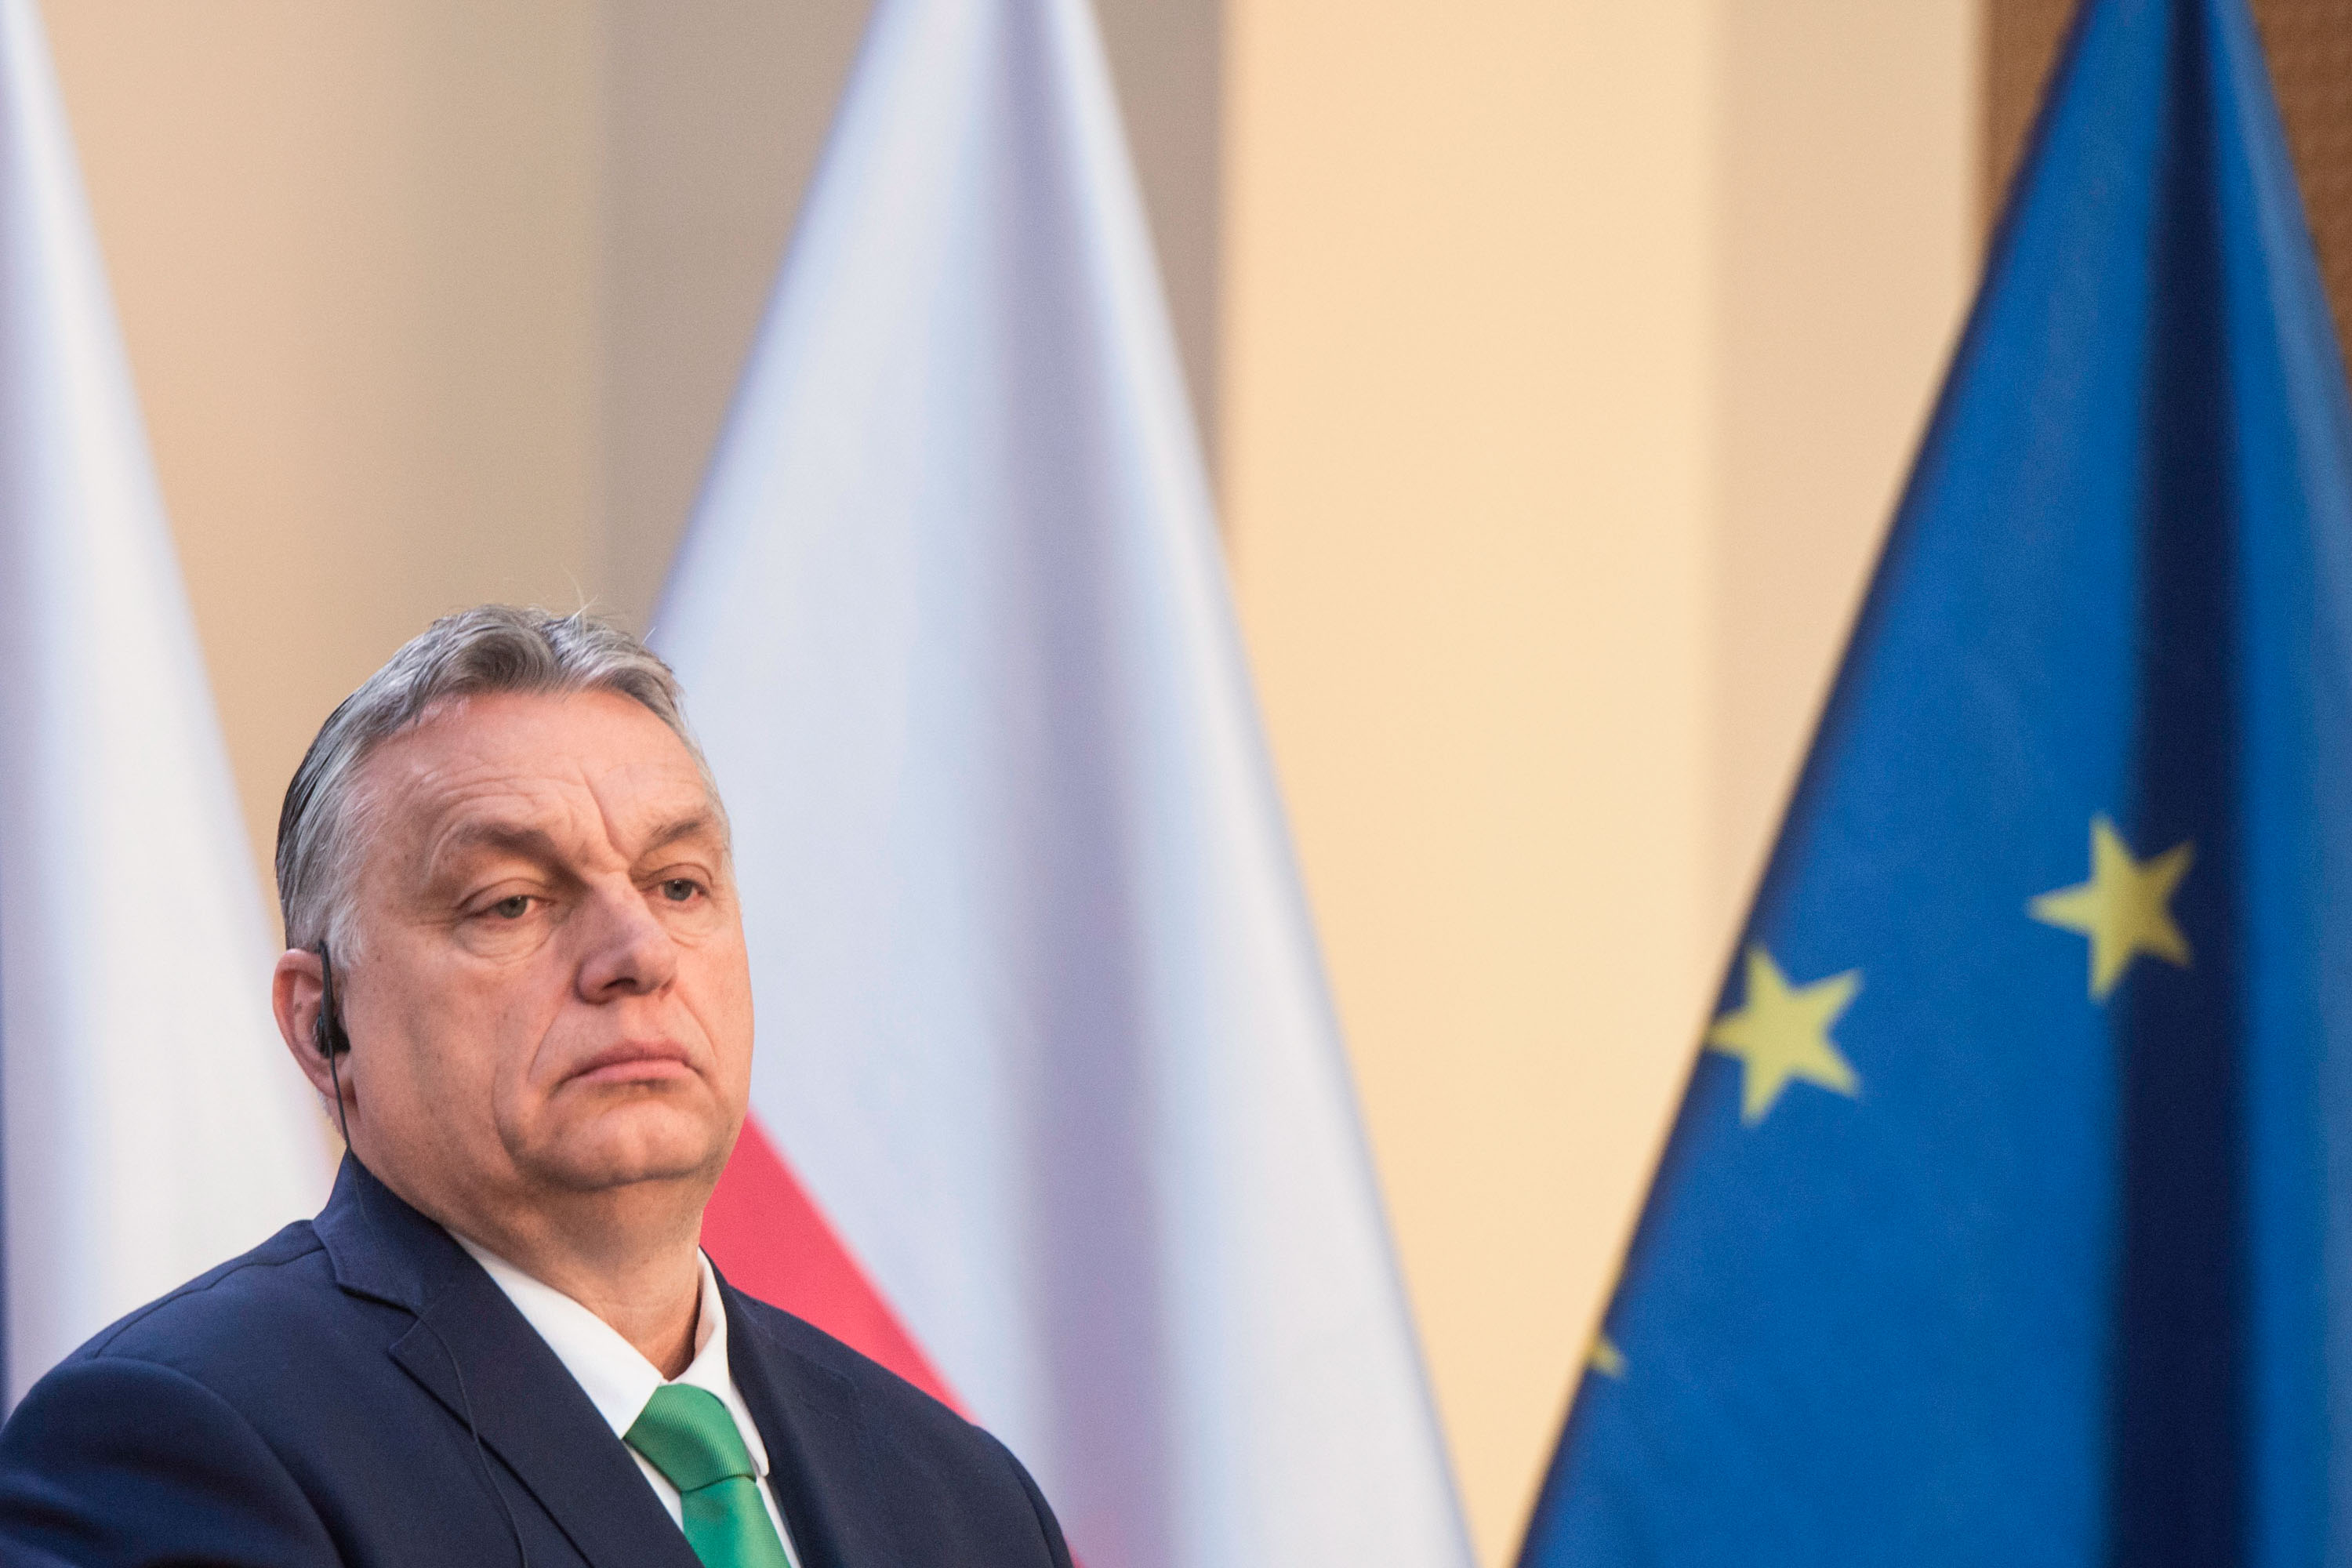 Hungary's Prime Minister Viktor Orban gives a press conference with other leaders in Prague, Czech Republic, on March 4.